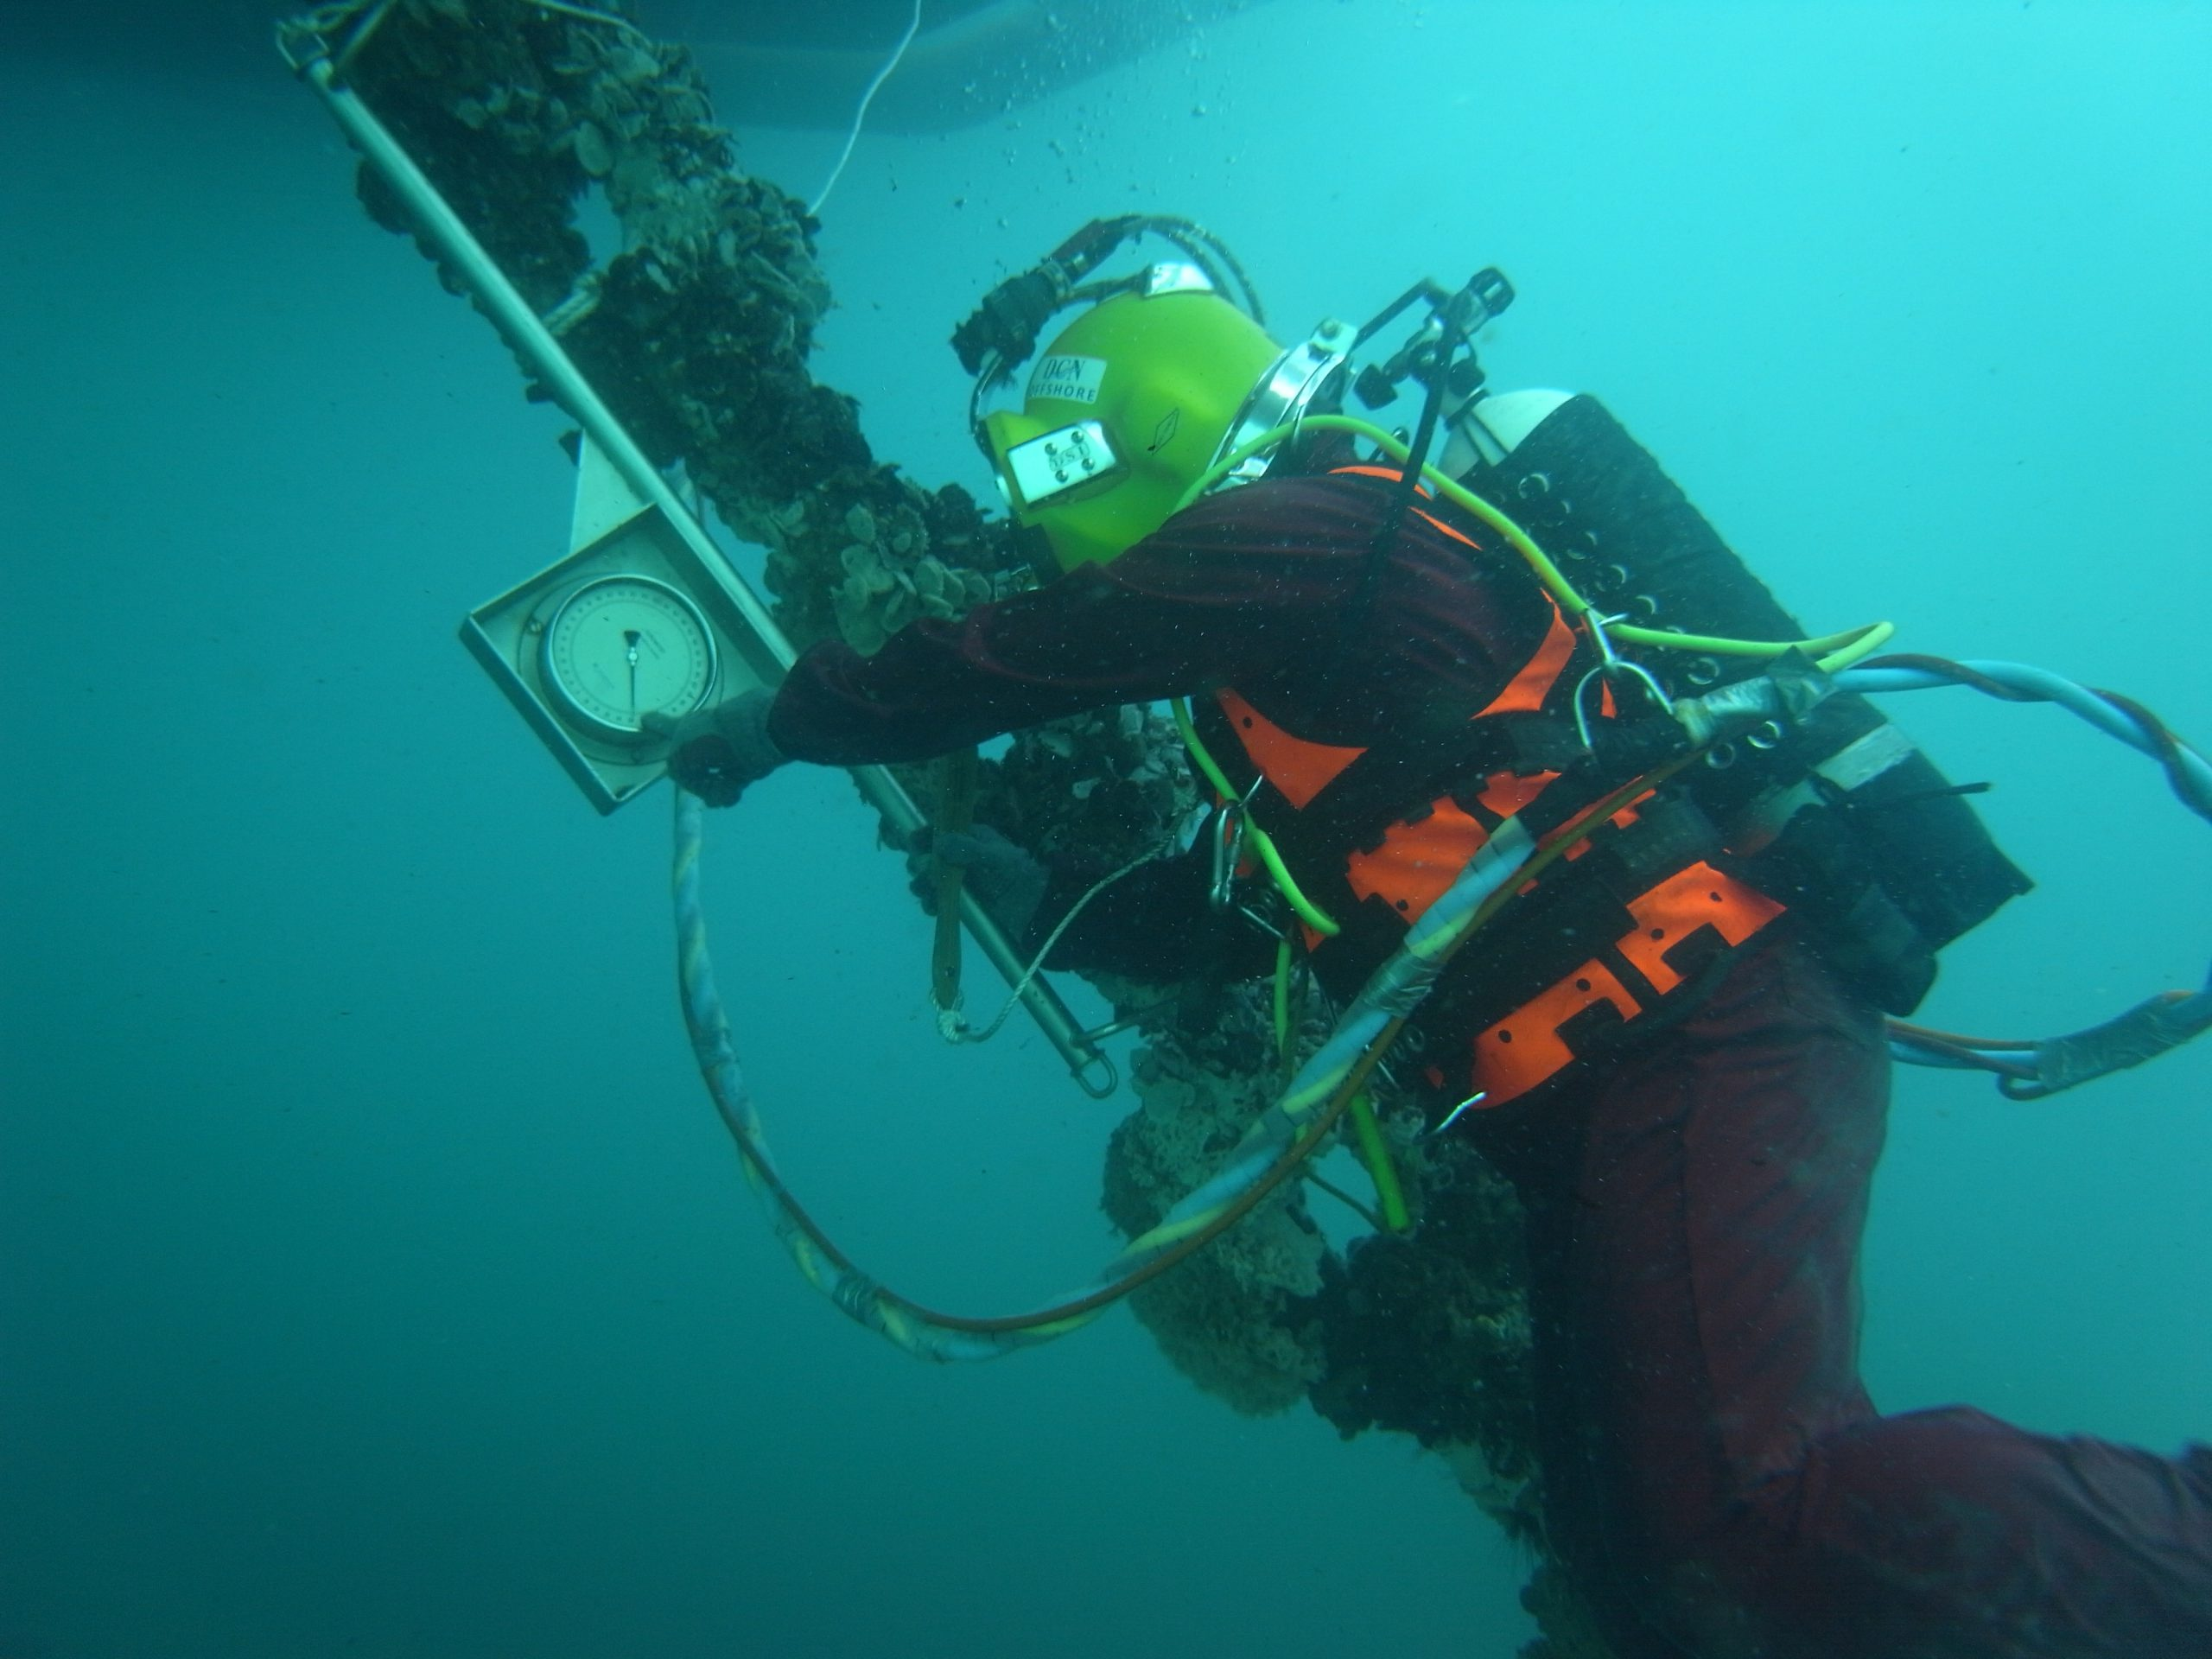 DRY DOCKING INSPECTION - Marine Eagle underwater Services